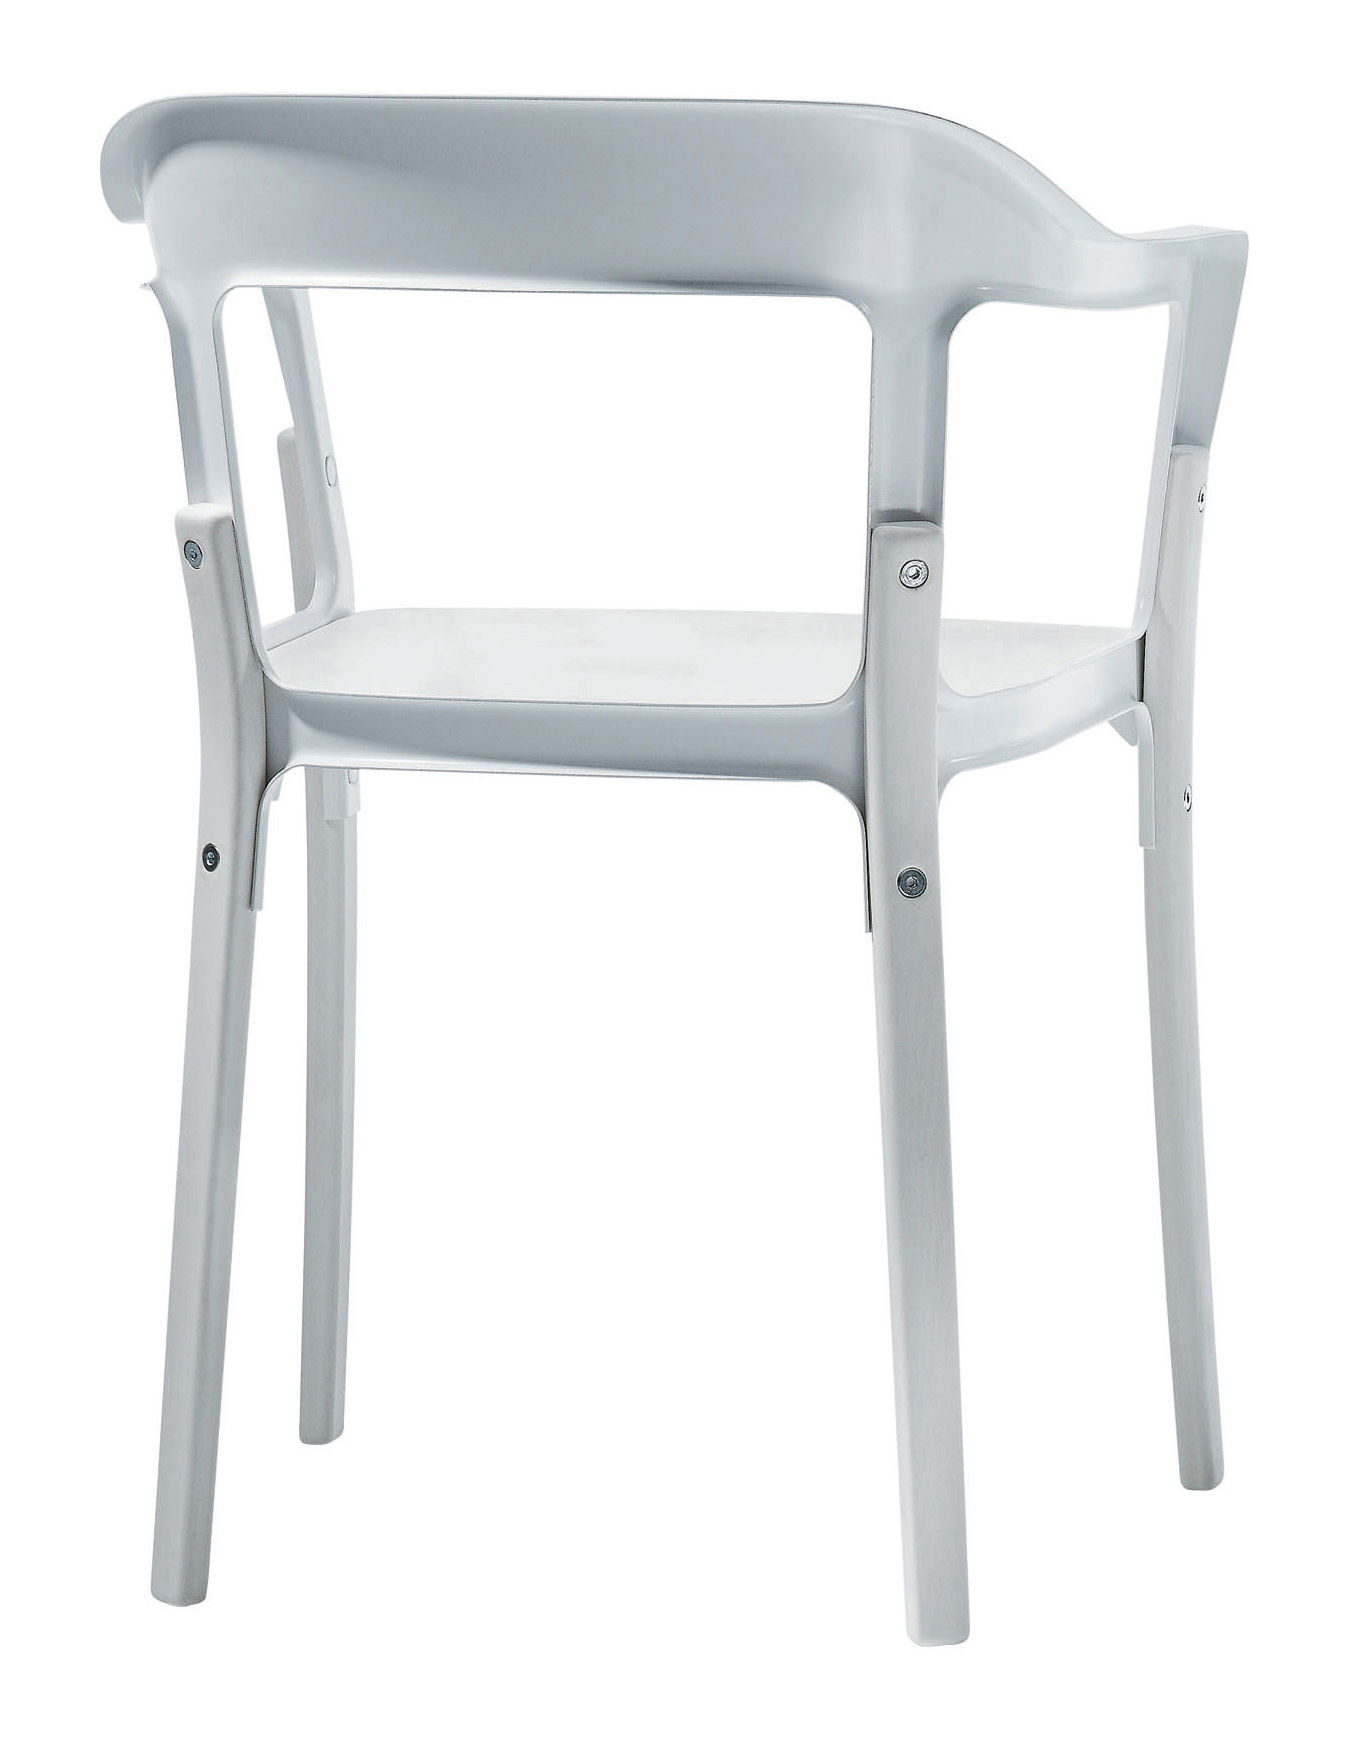 Furniture - Chairs - Steelwood Armchair - Wood & metal by Magis - White - Tinted beechwood, Varnished steel